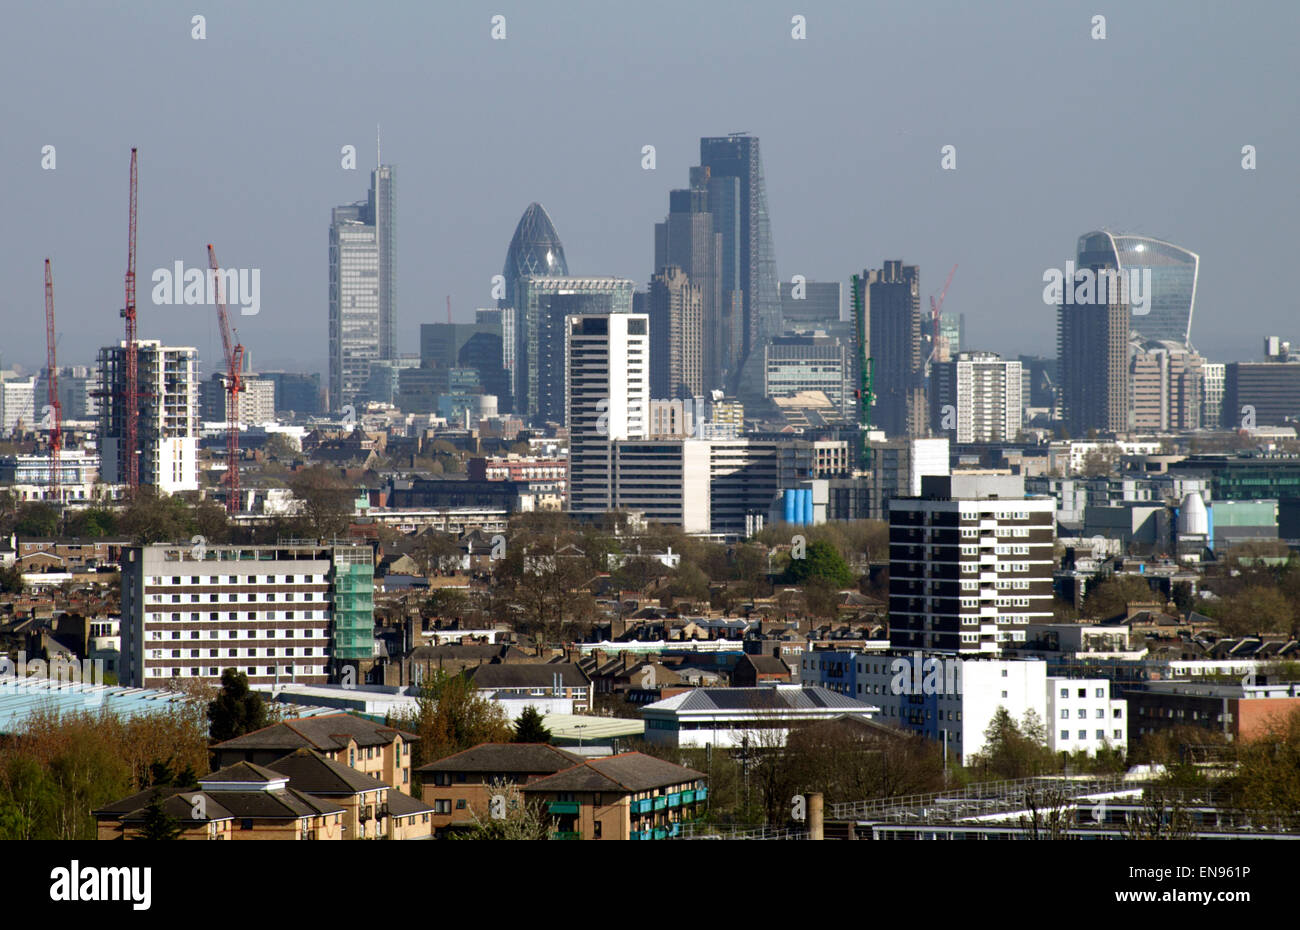 london skyline hampstead heath stock photos london. Black Bedroom Furniture Sets. Home Design Ideas